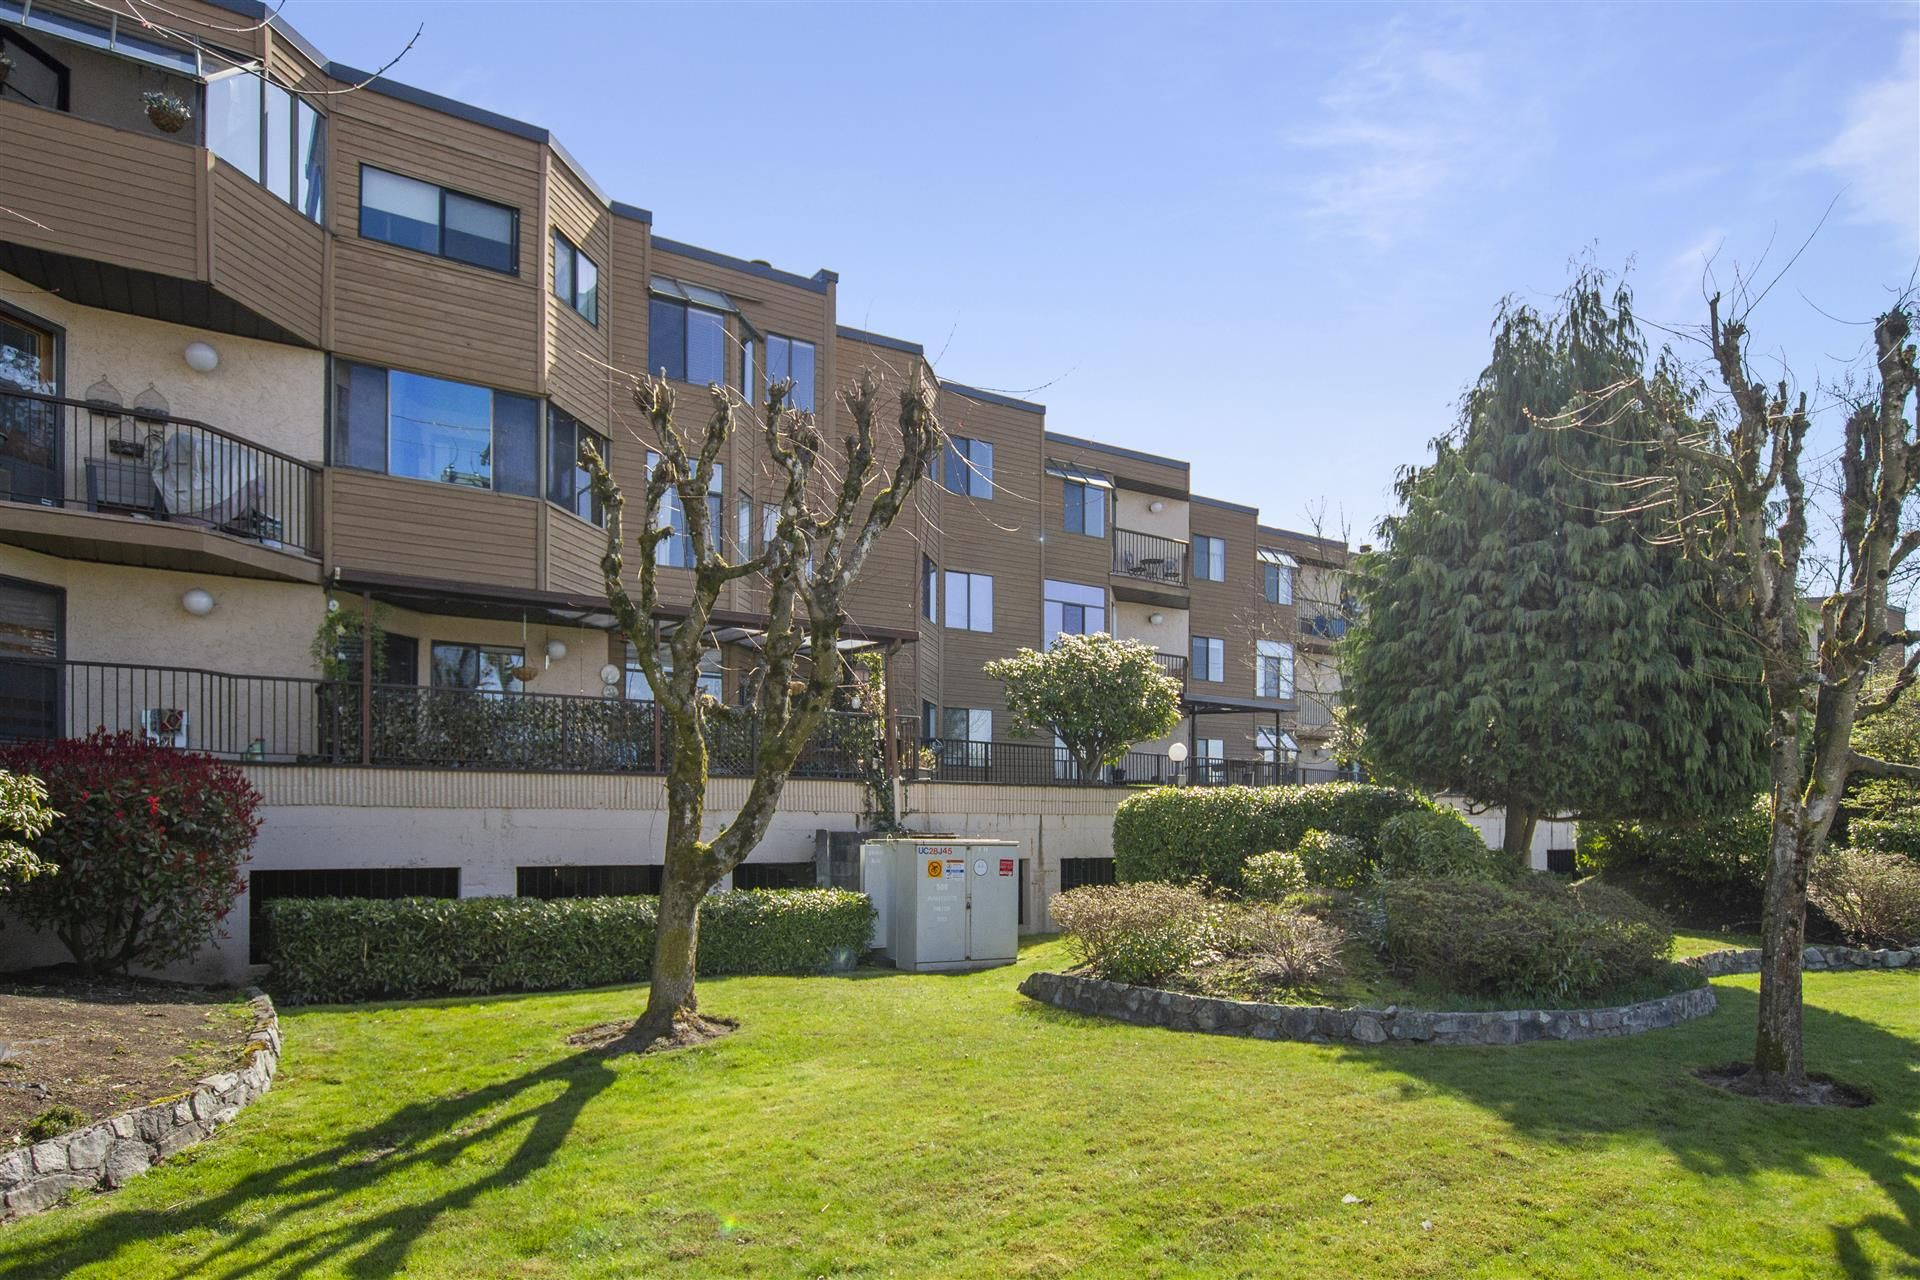 """Main Photo: 31 11900 228 Street in Maple Ridge: East Central Condo for sale in """"MOONLIGHT GROVE"""" : MLS®# R2562684"""